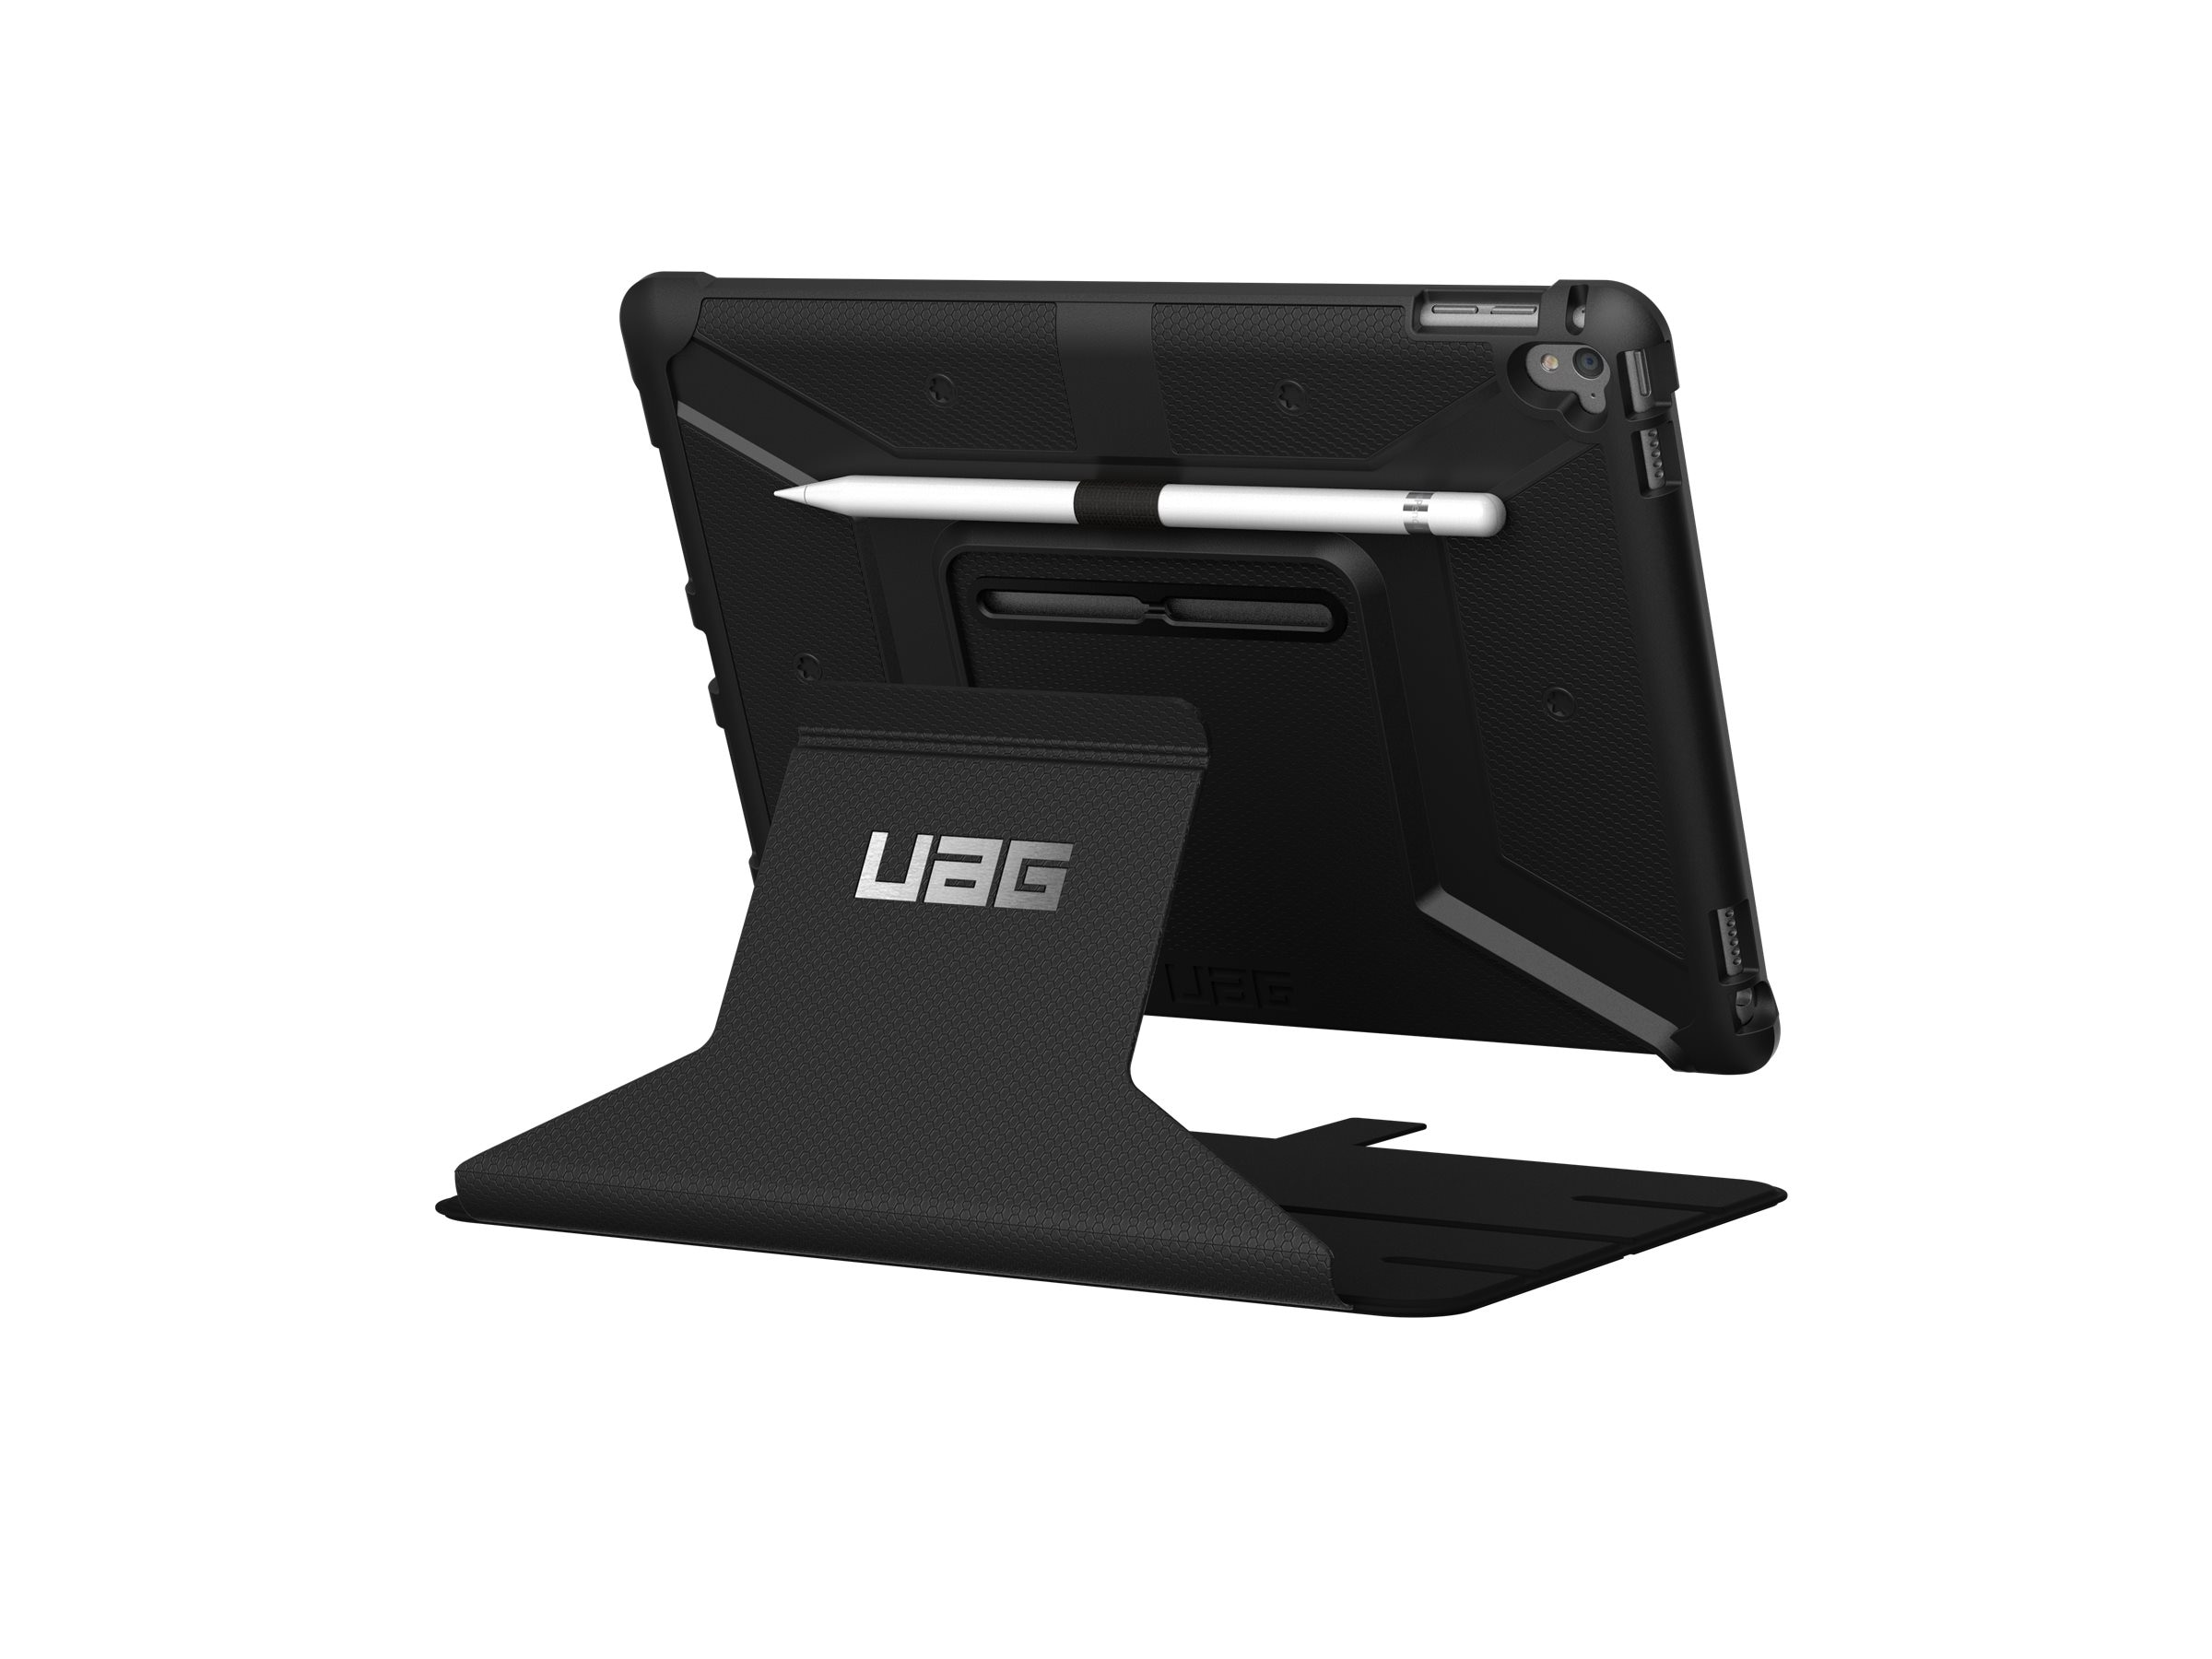 Urban Armor Folio Case for iPad Pro 9.7, Black, IPDPRO9.7-BLK